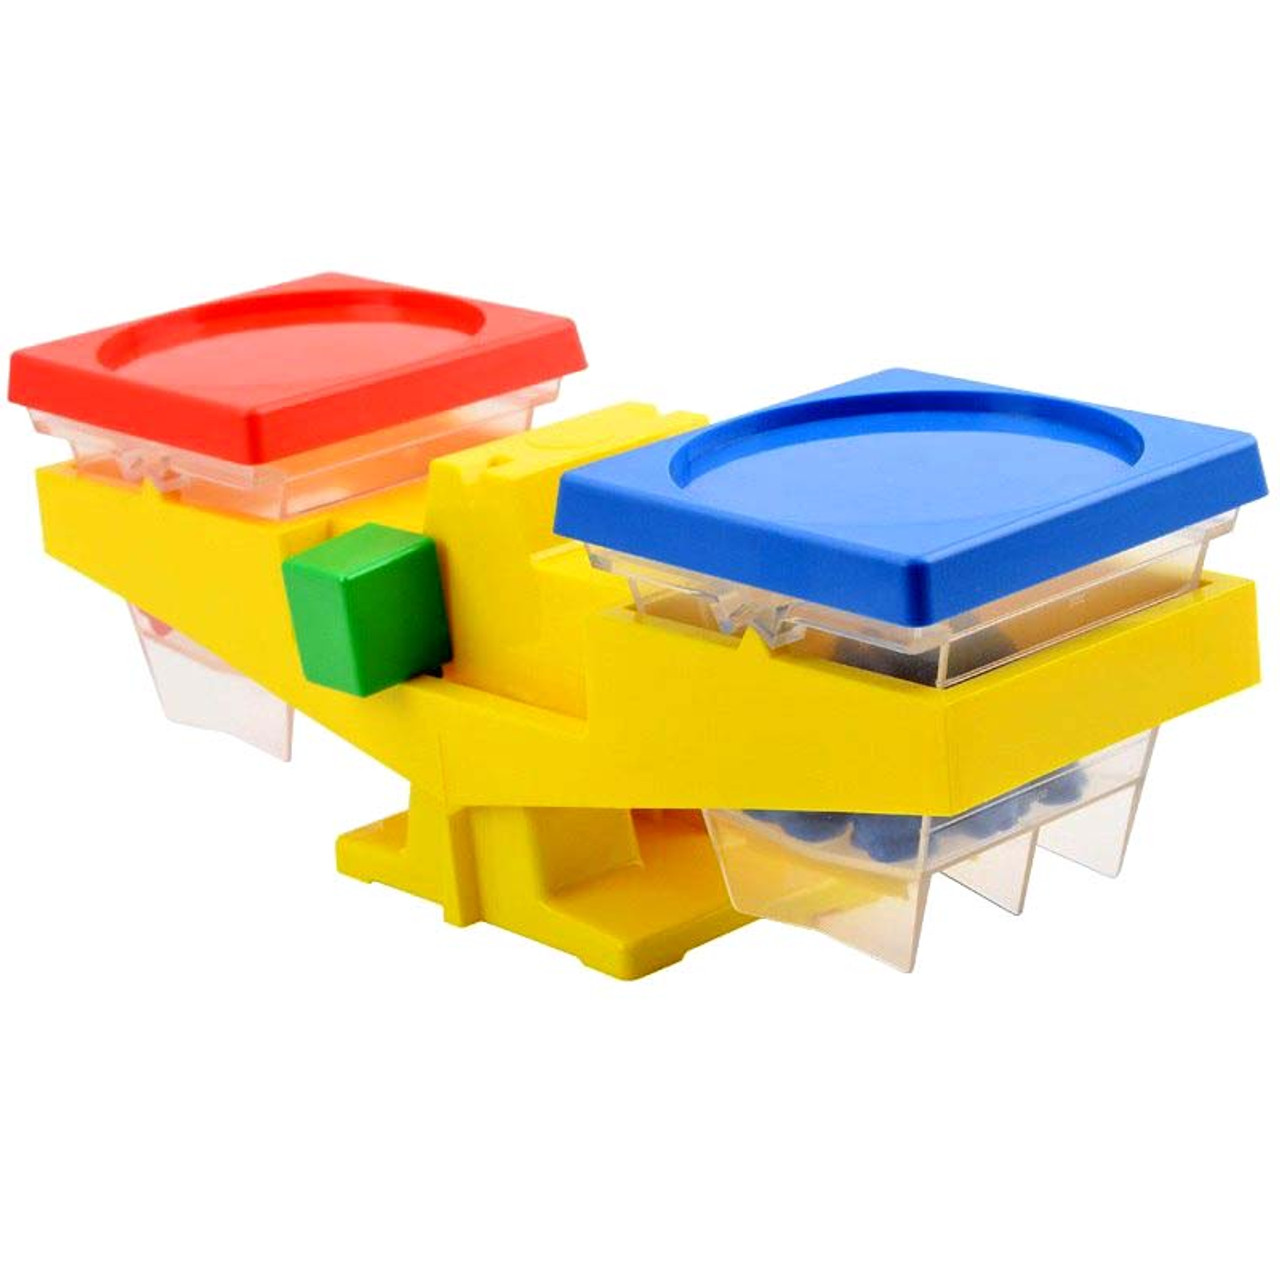 Montessori-educational-toys-science-balance-game-for-kids-early-learning-weight-color-arrangement-and-so-on